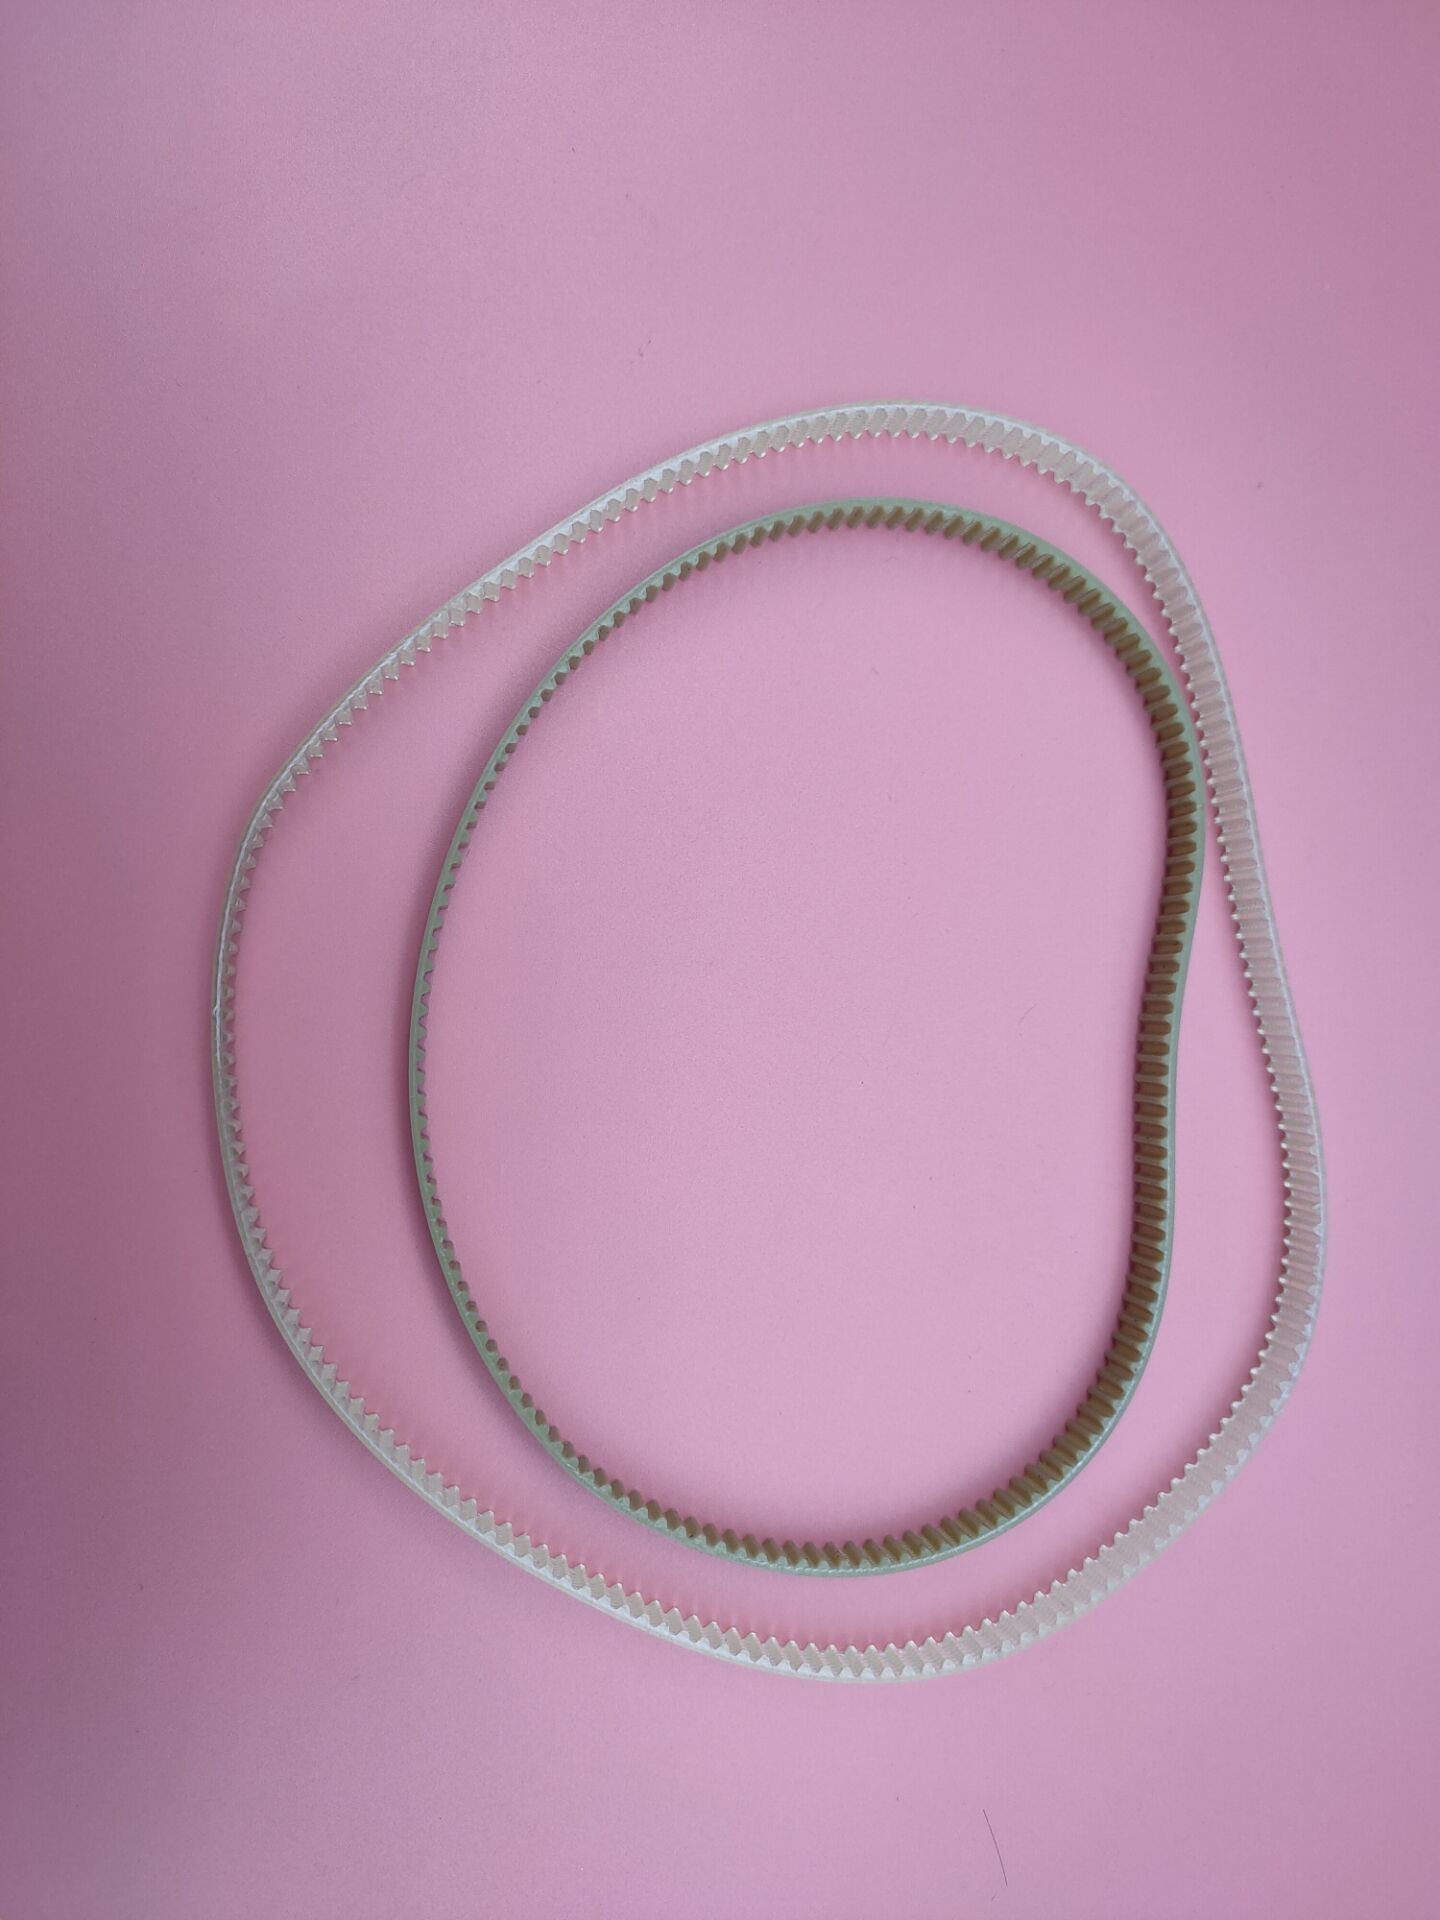 100% New Replacement Toothed Belts For Rolsen-RBM1480,RBM-1480 Bread Maker Belt